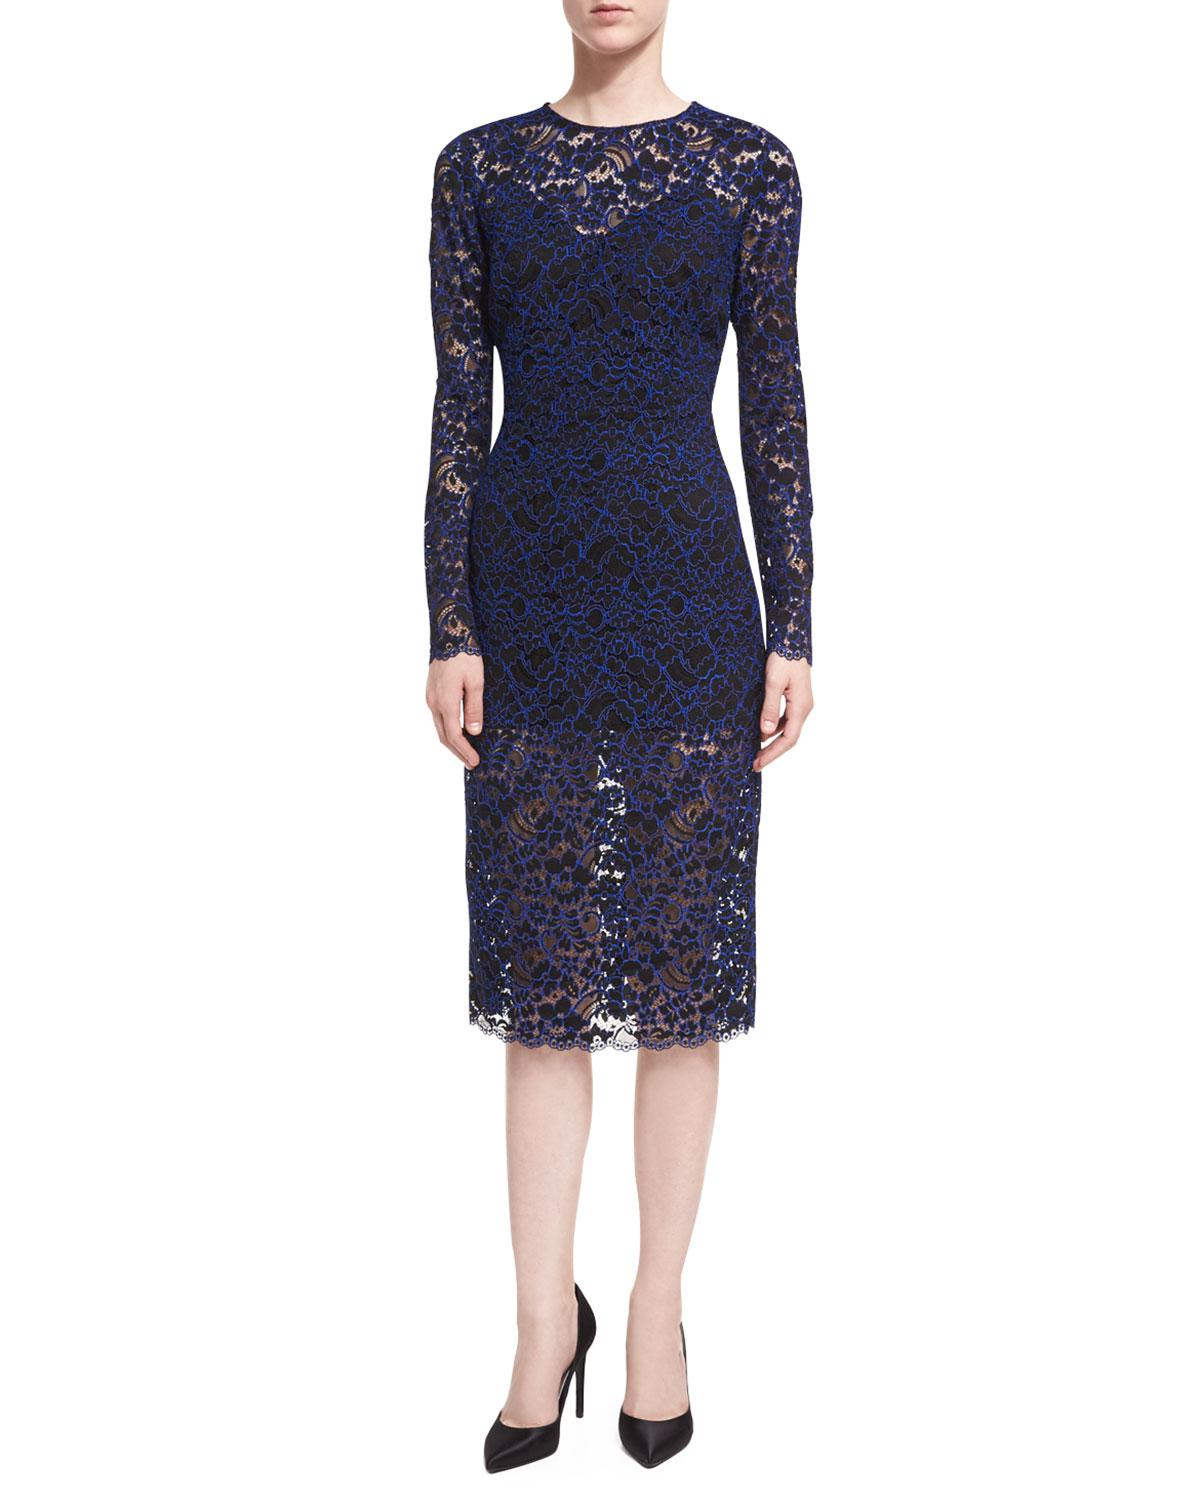 Lyst - Veronica Beard Jewel-neck Long-sleeve Corded Lace Cocktail ...